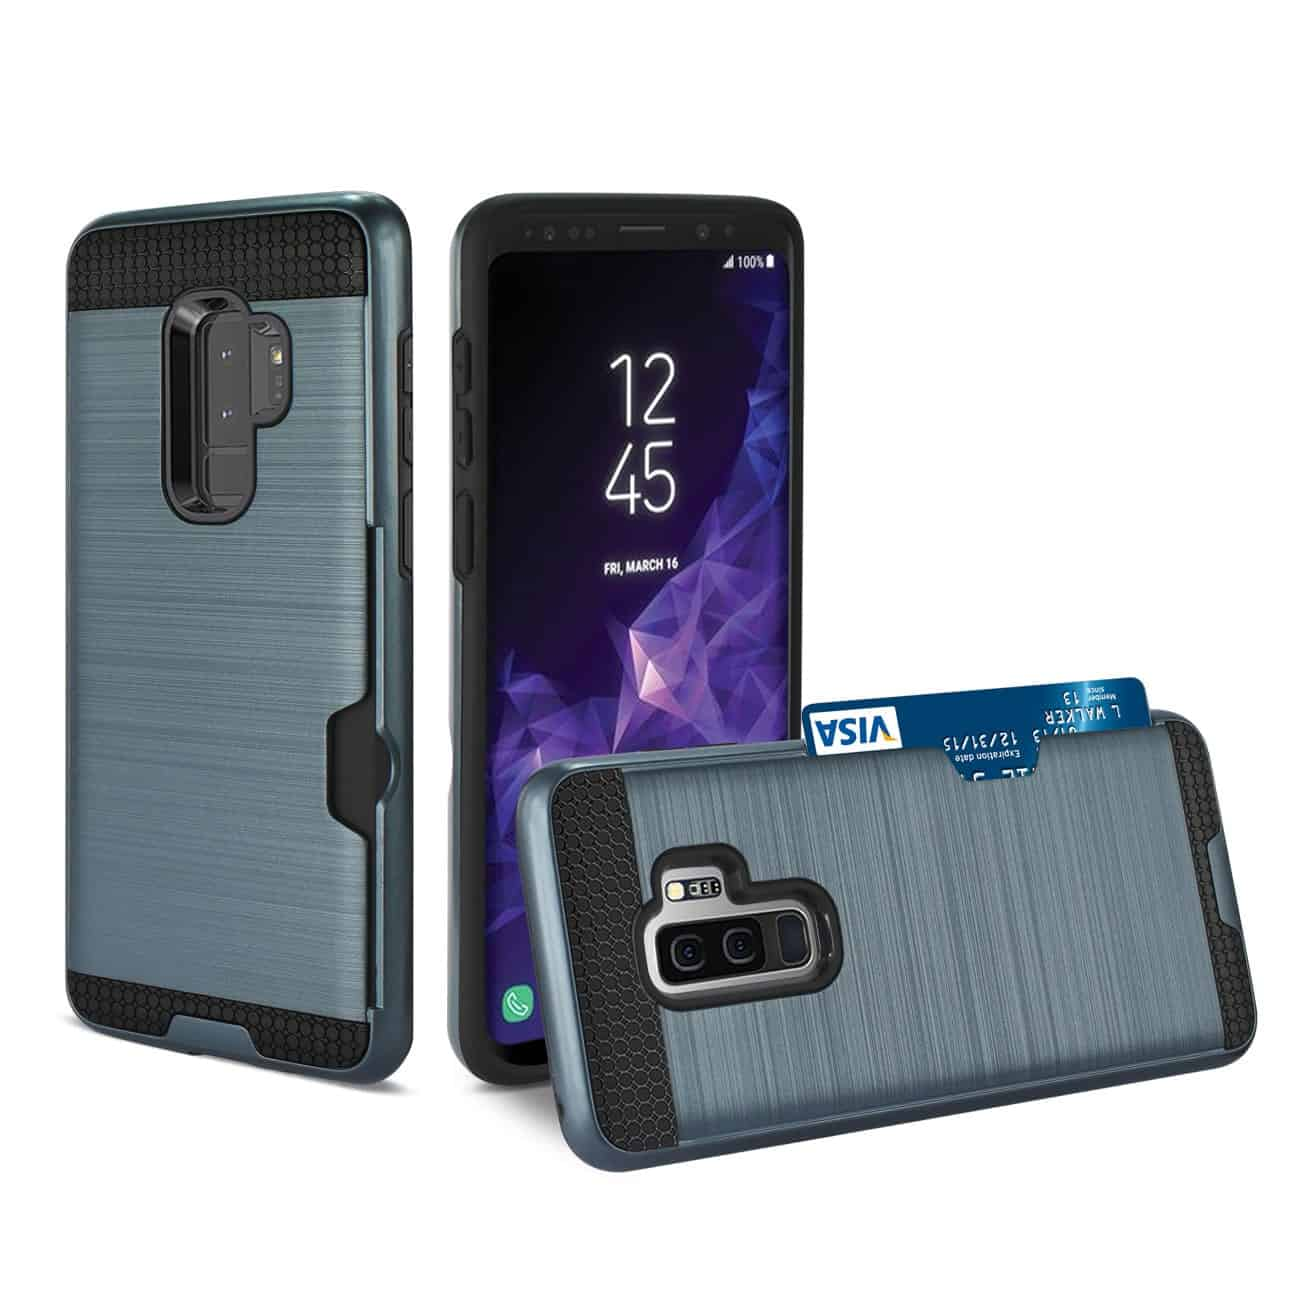 Samsung Galaxy S9 Plus Slim Armor Hybrid Case With Card Holder In Navy